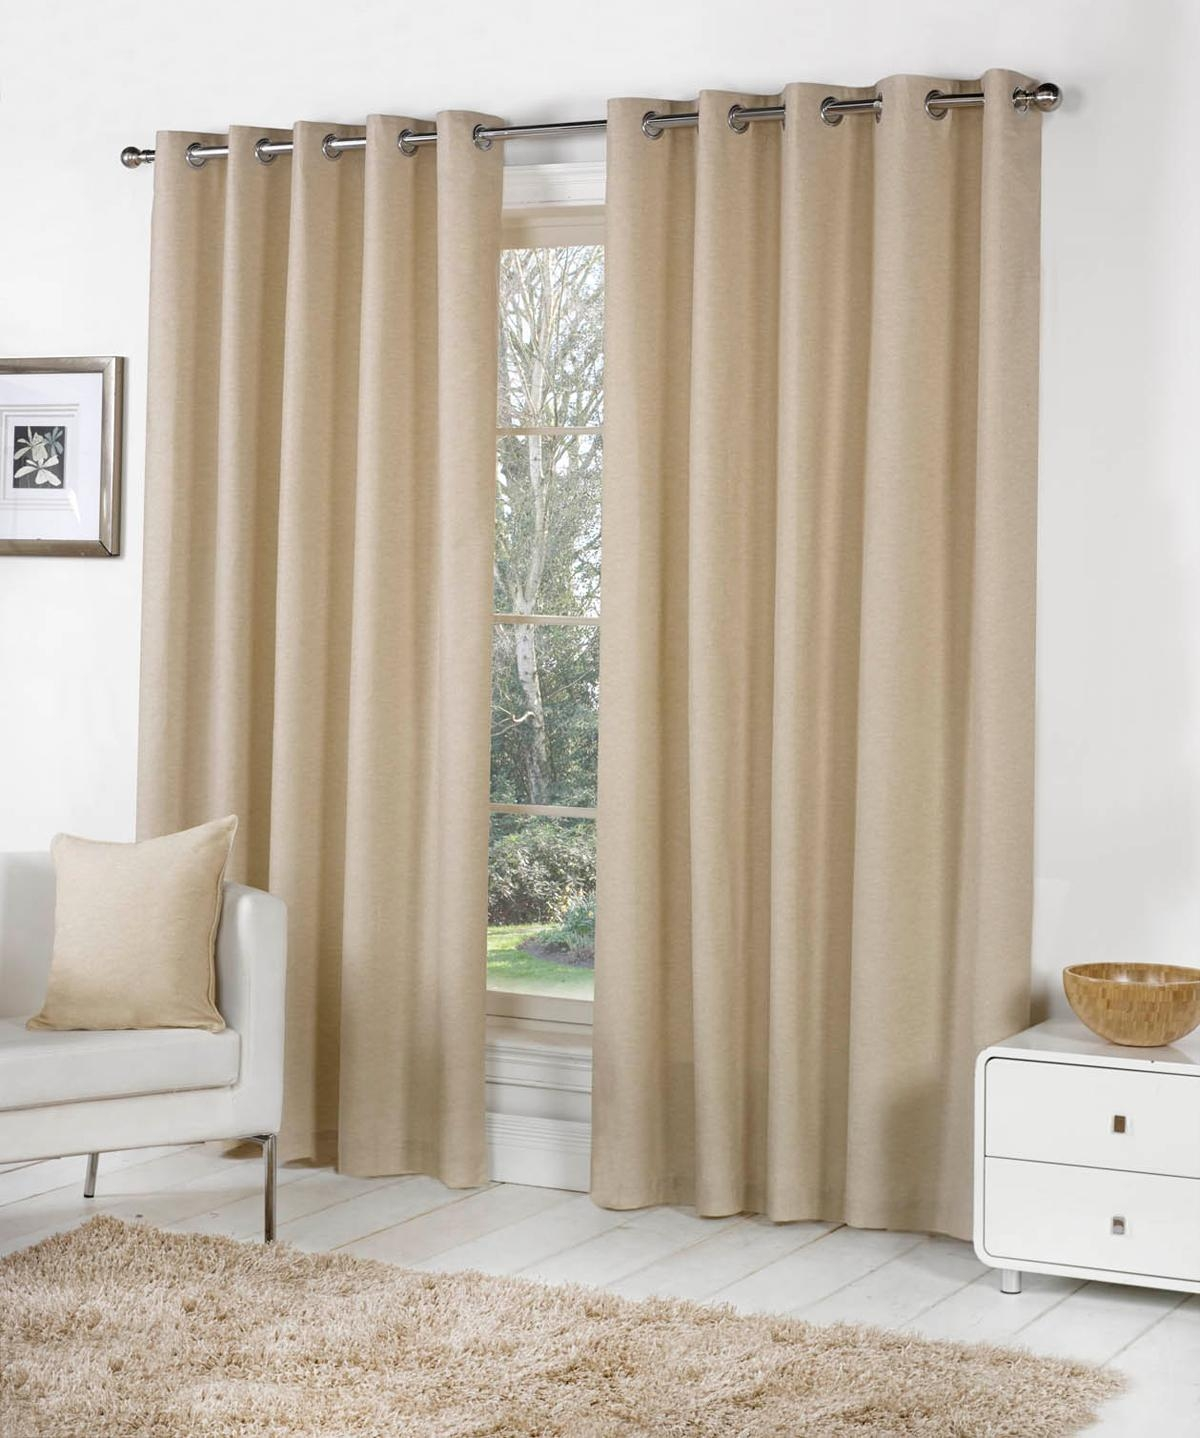 Eyelet Curtains Affordable And Quality Curtains Terrys Fabrics Throughout Cotton Eyelet Curtains (View 10 of 15)